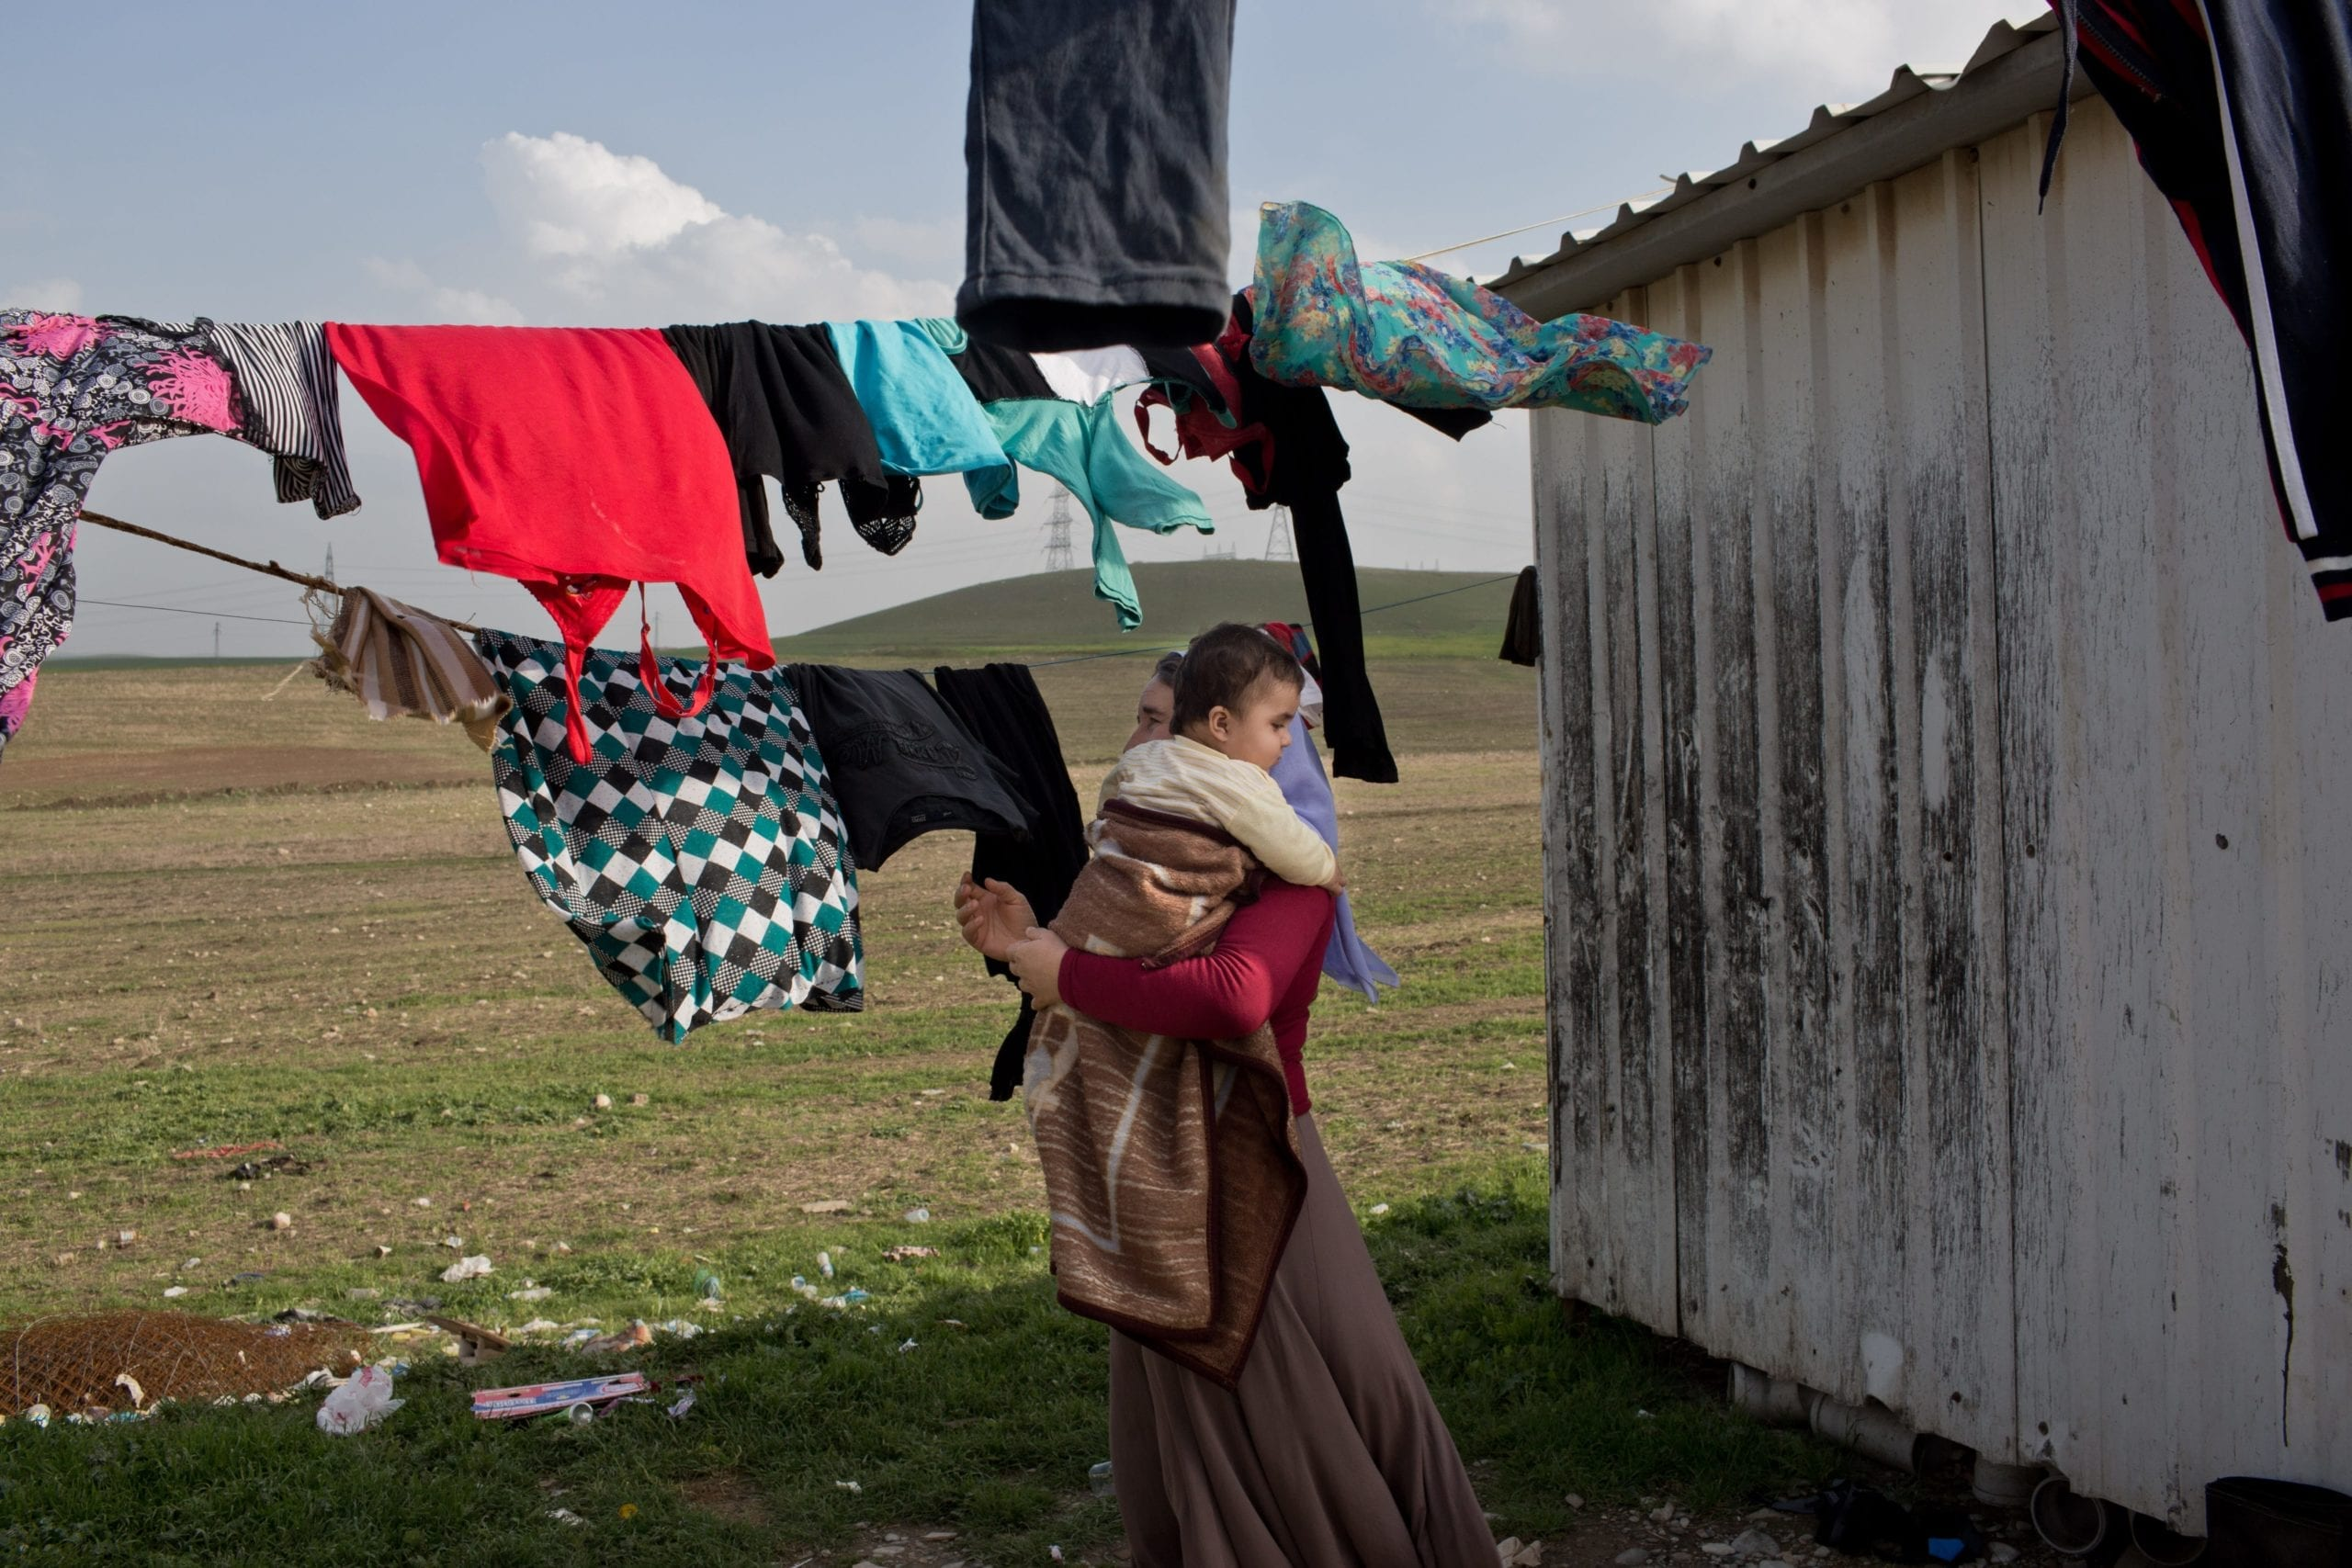 Ghazal hangs up the family laundry while holding her grandson, Mazal. The family of Yezidis, displaced from Sinjar, live next to an oil refinery in the Kurdish Region of Iraq. The young men run the refinery 24 hours a day with little to no safety equipment.